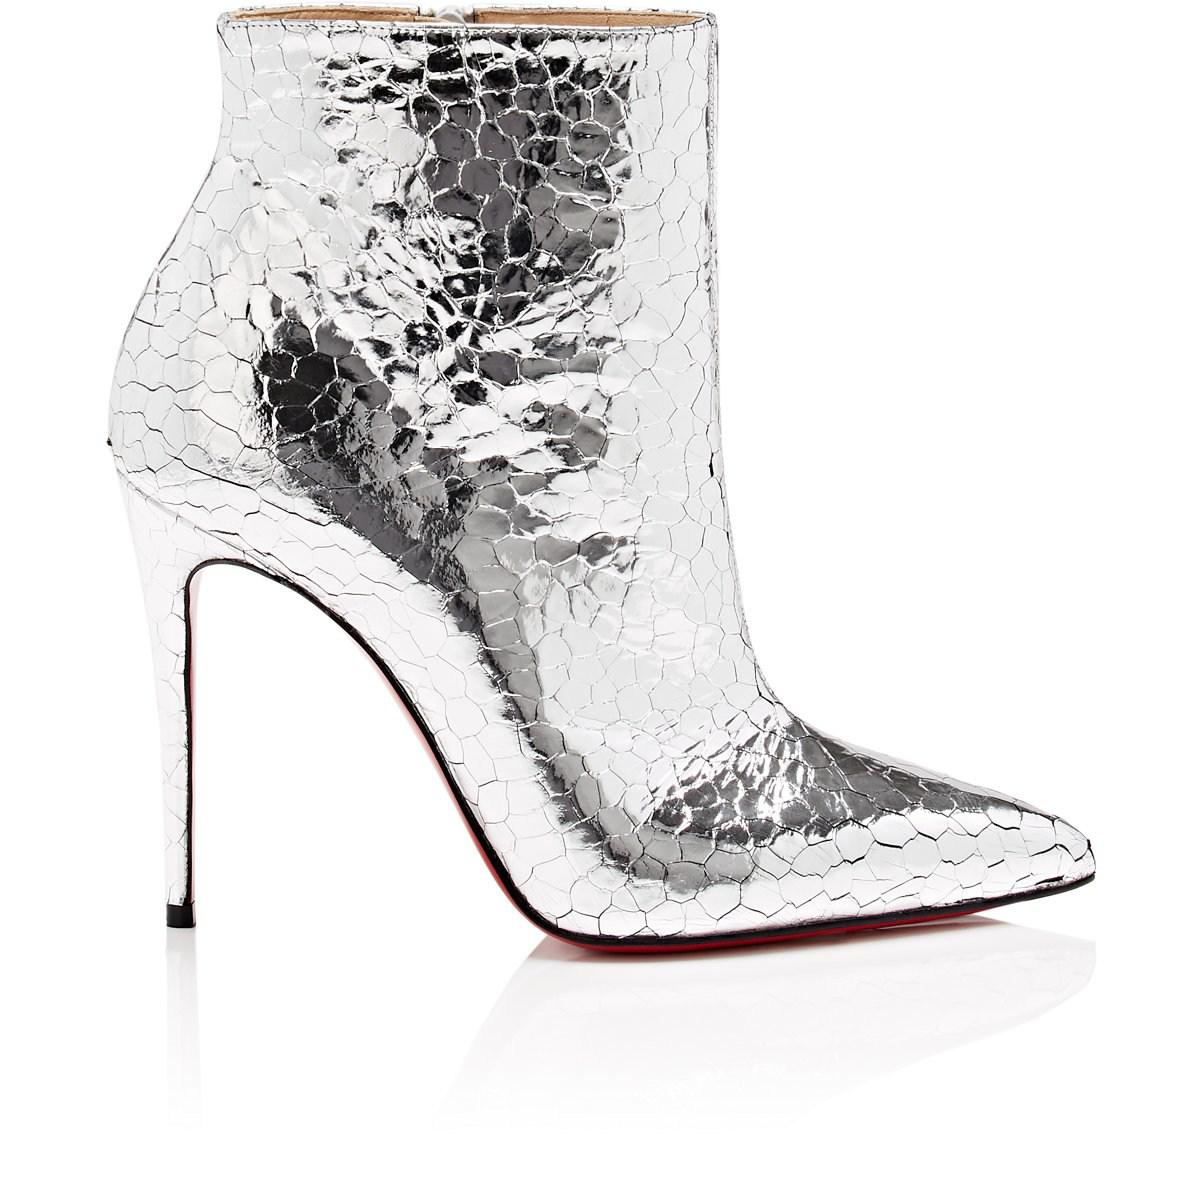 844e8fd37893 Lyst - Christian Louboutin So Kate Craquelé Leather Ankle Boots in ...